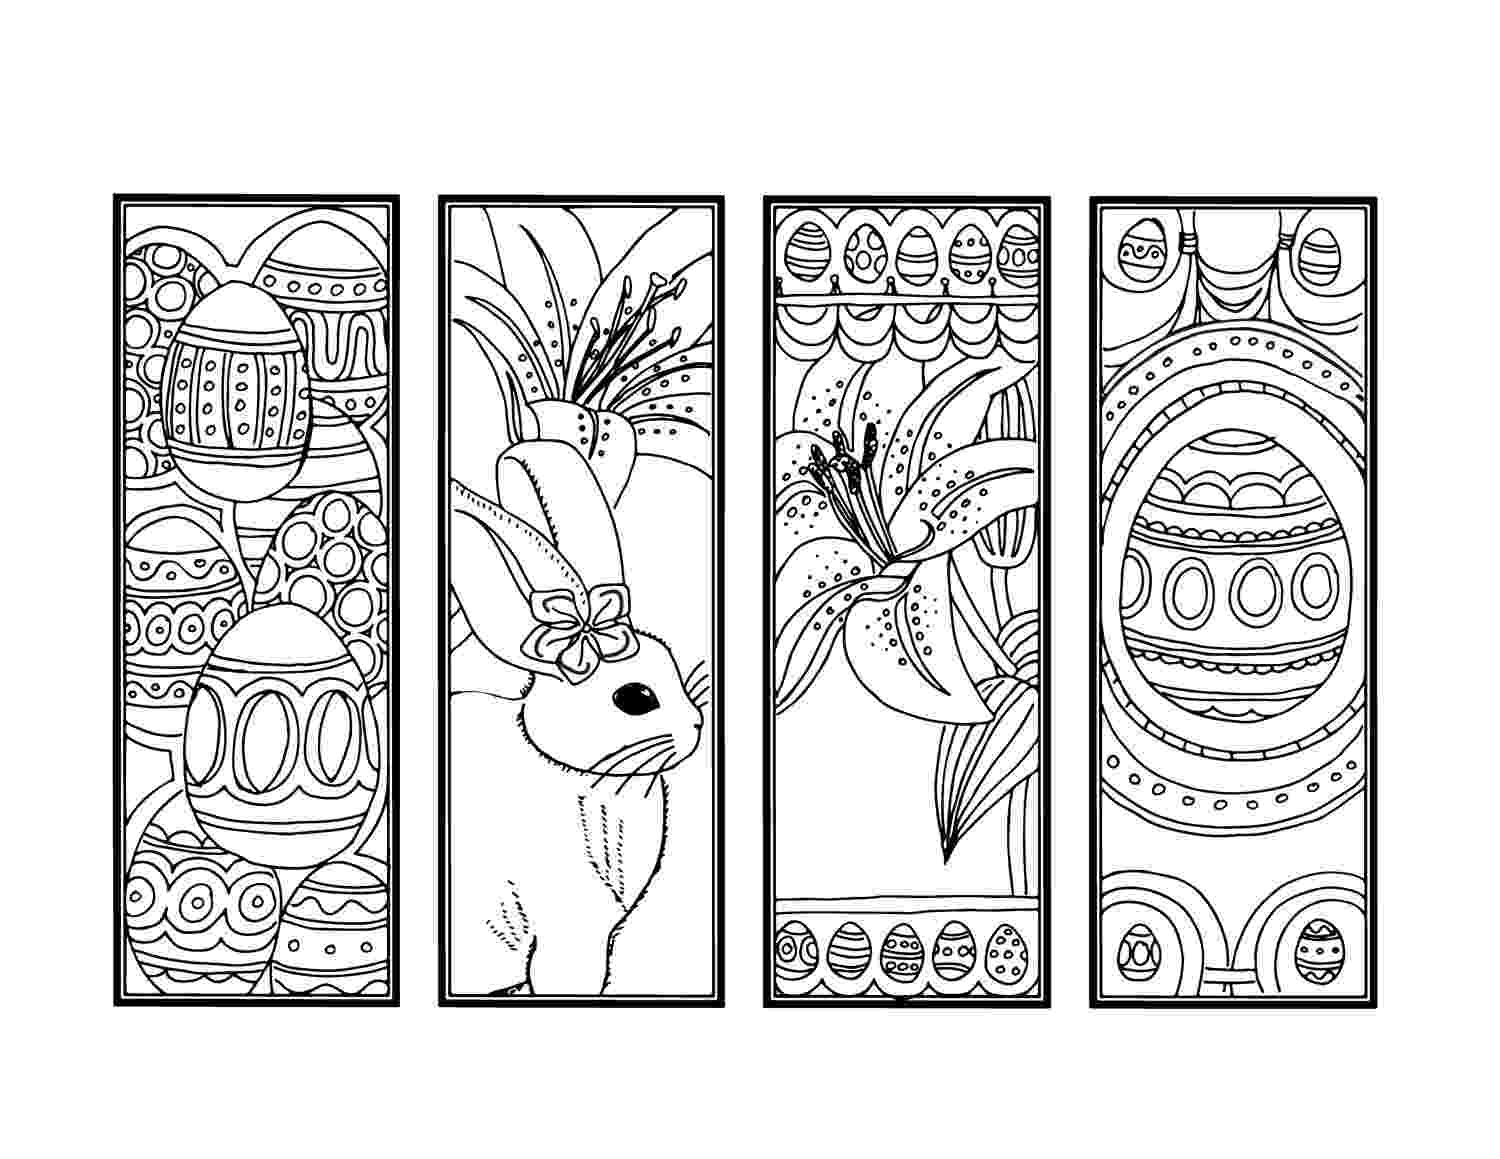 coloring easter bookmarks 65 fun blank bookmarks to color for you kittybabylovecom bookmarks easter coloring